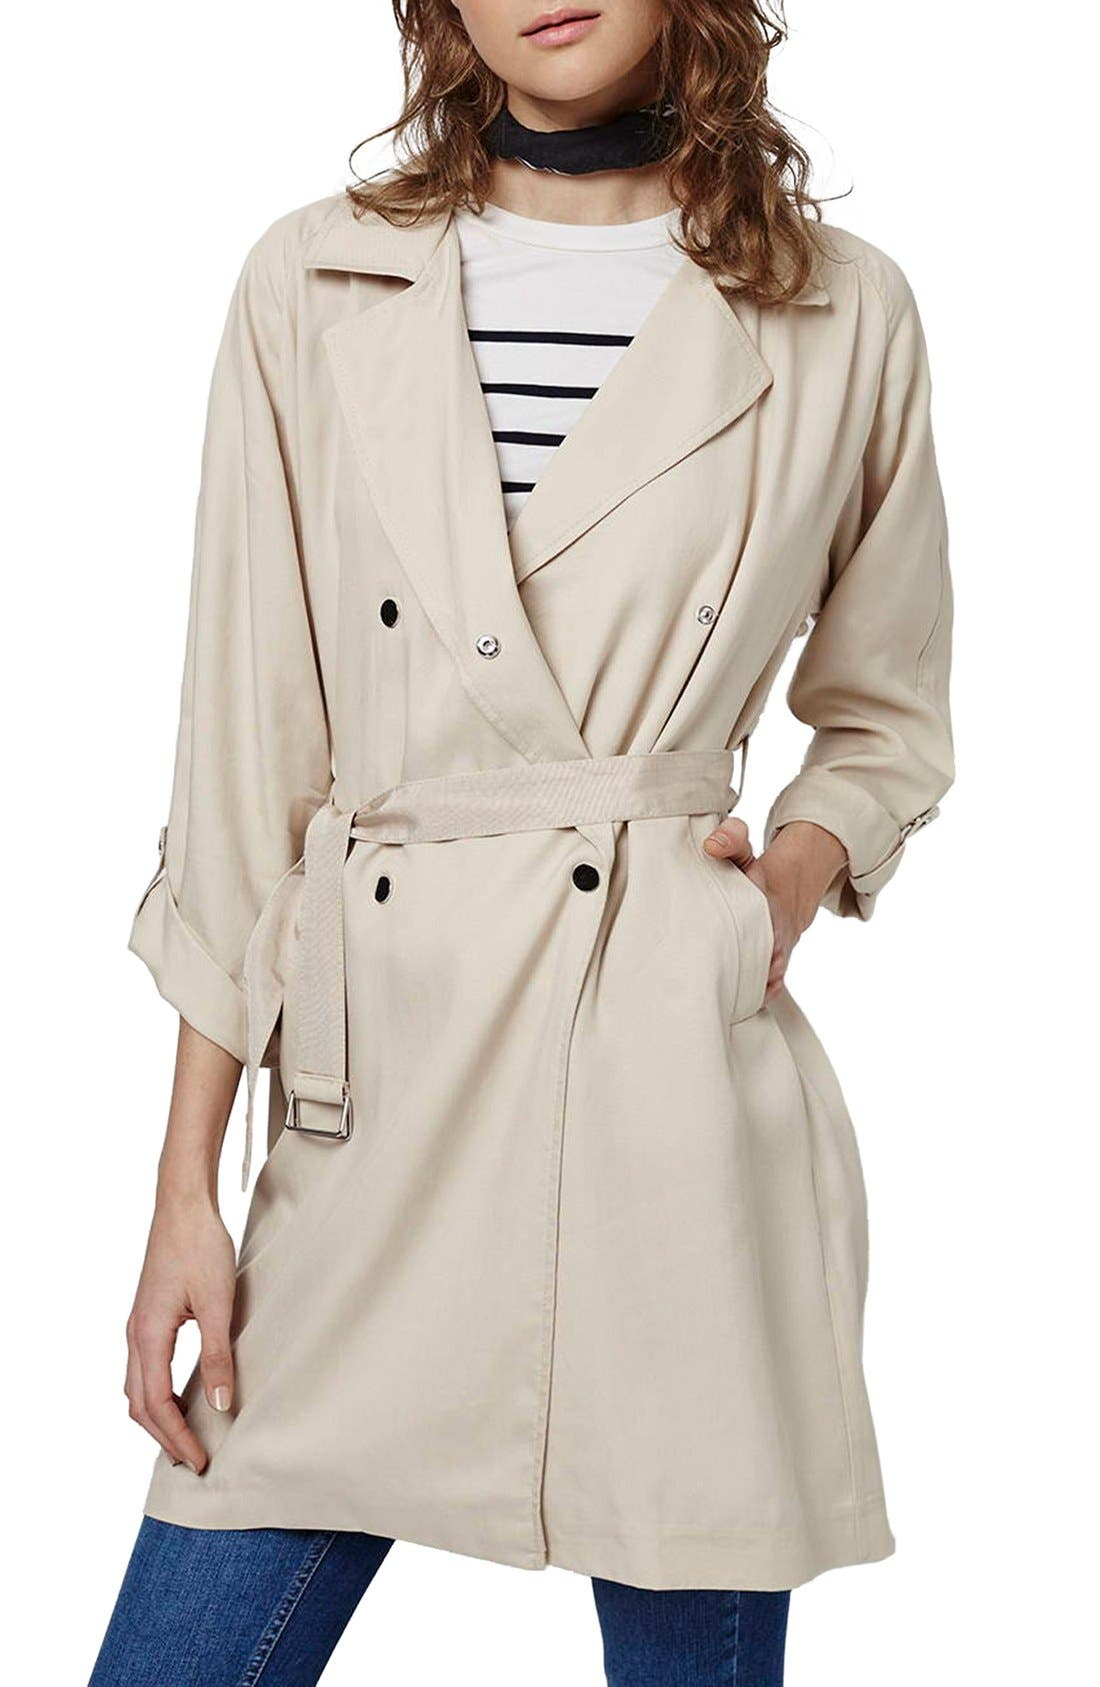 Alternate Image 1 Selected - Topshop Textured Double Breasted Coat